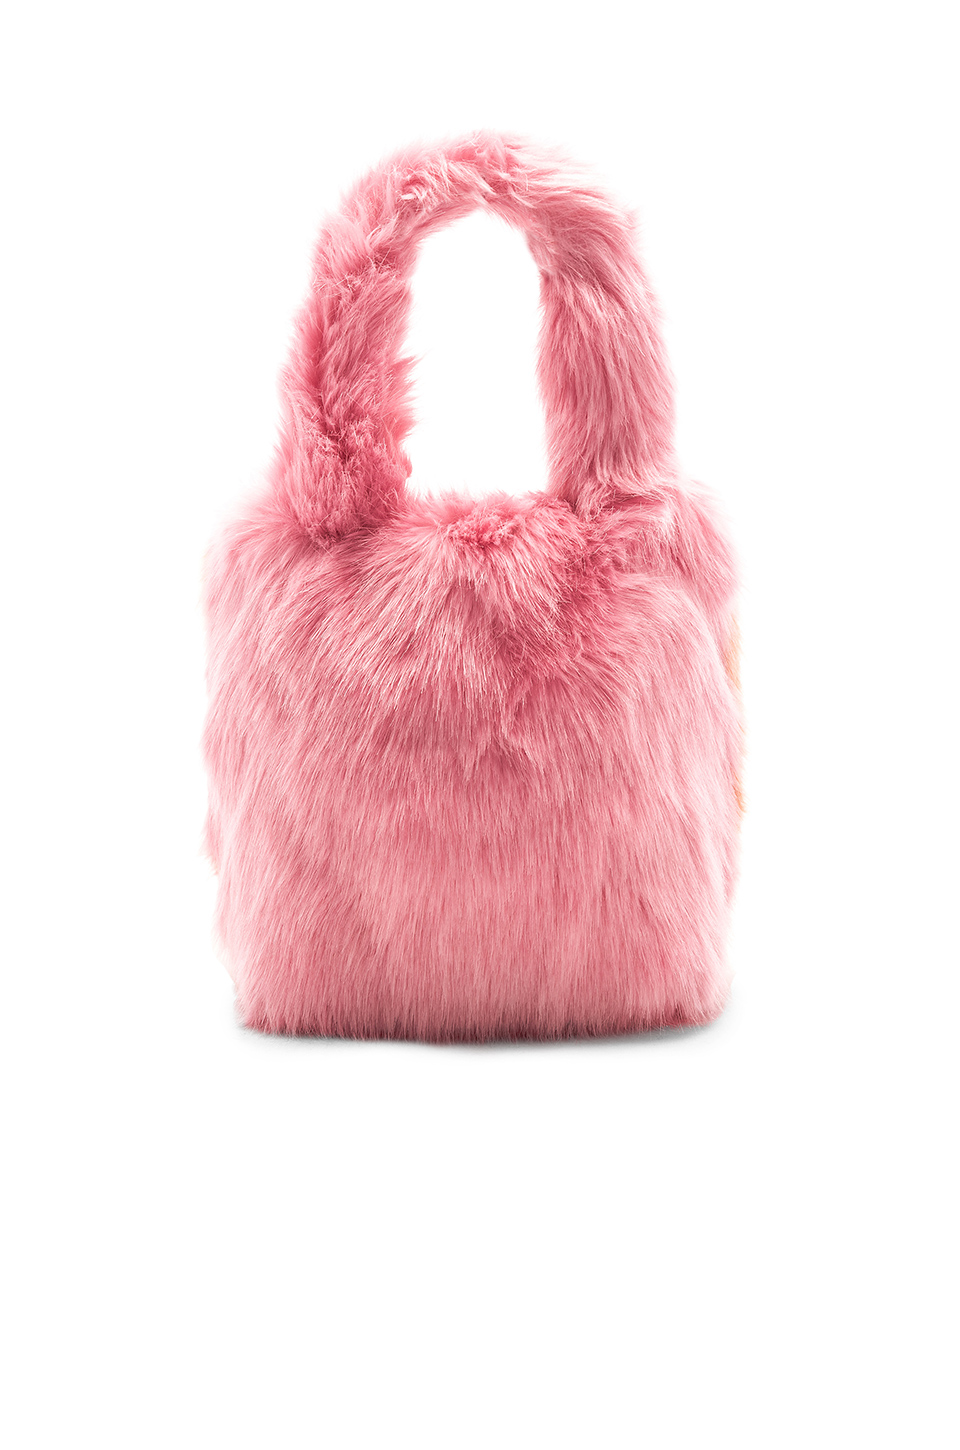 Charlotte Simone Pop Faux Fur Tote in Pastel Pink & Apricot